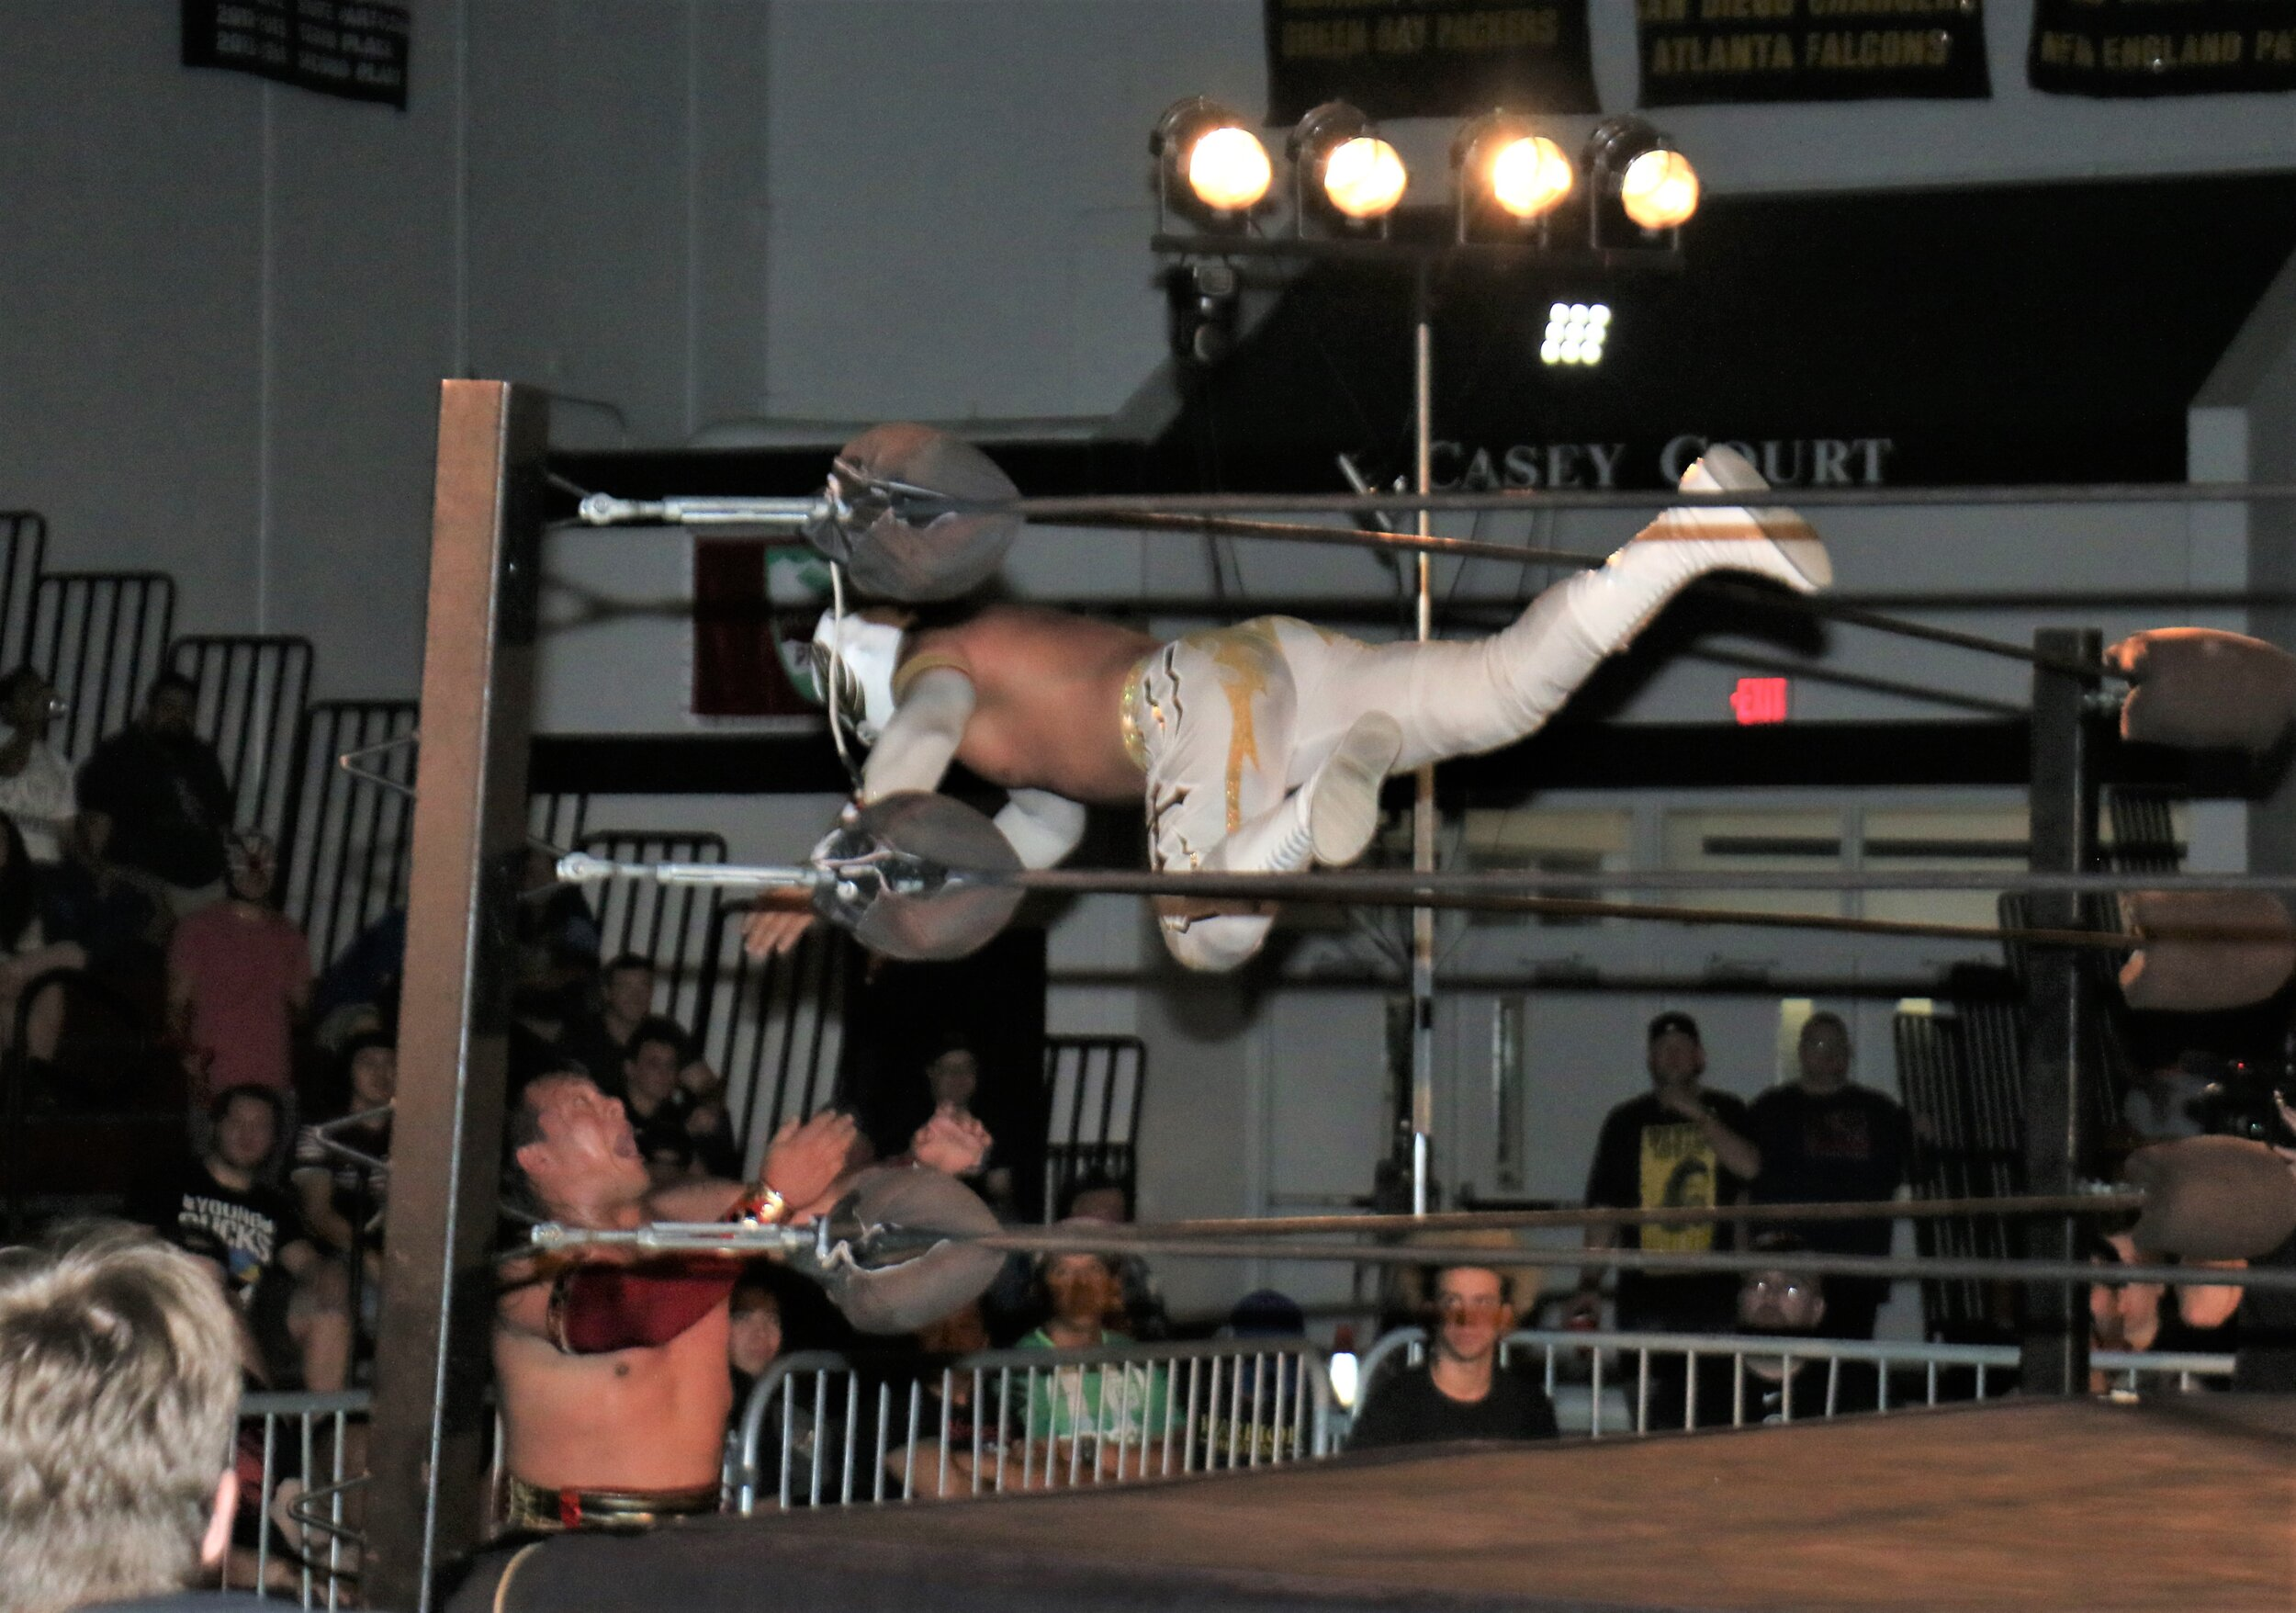 Caristico takes another dive out of the ring.